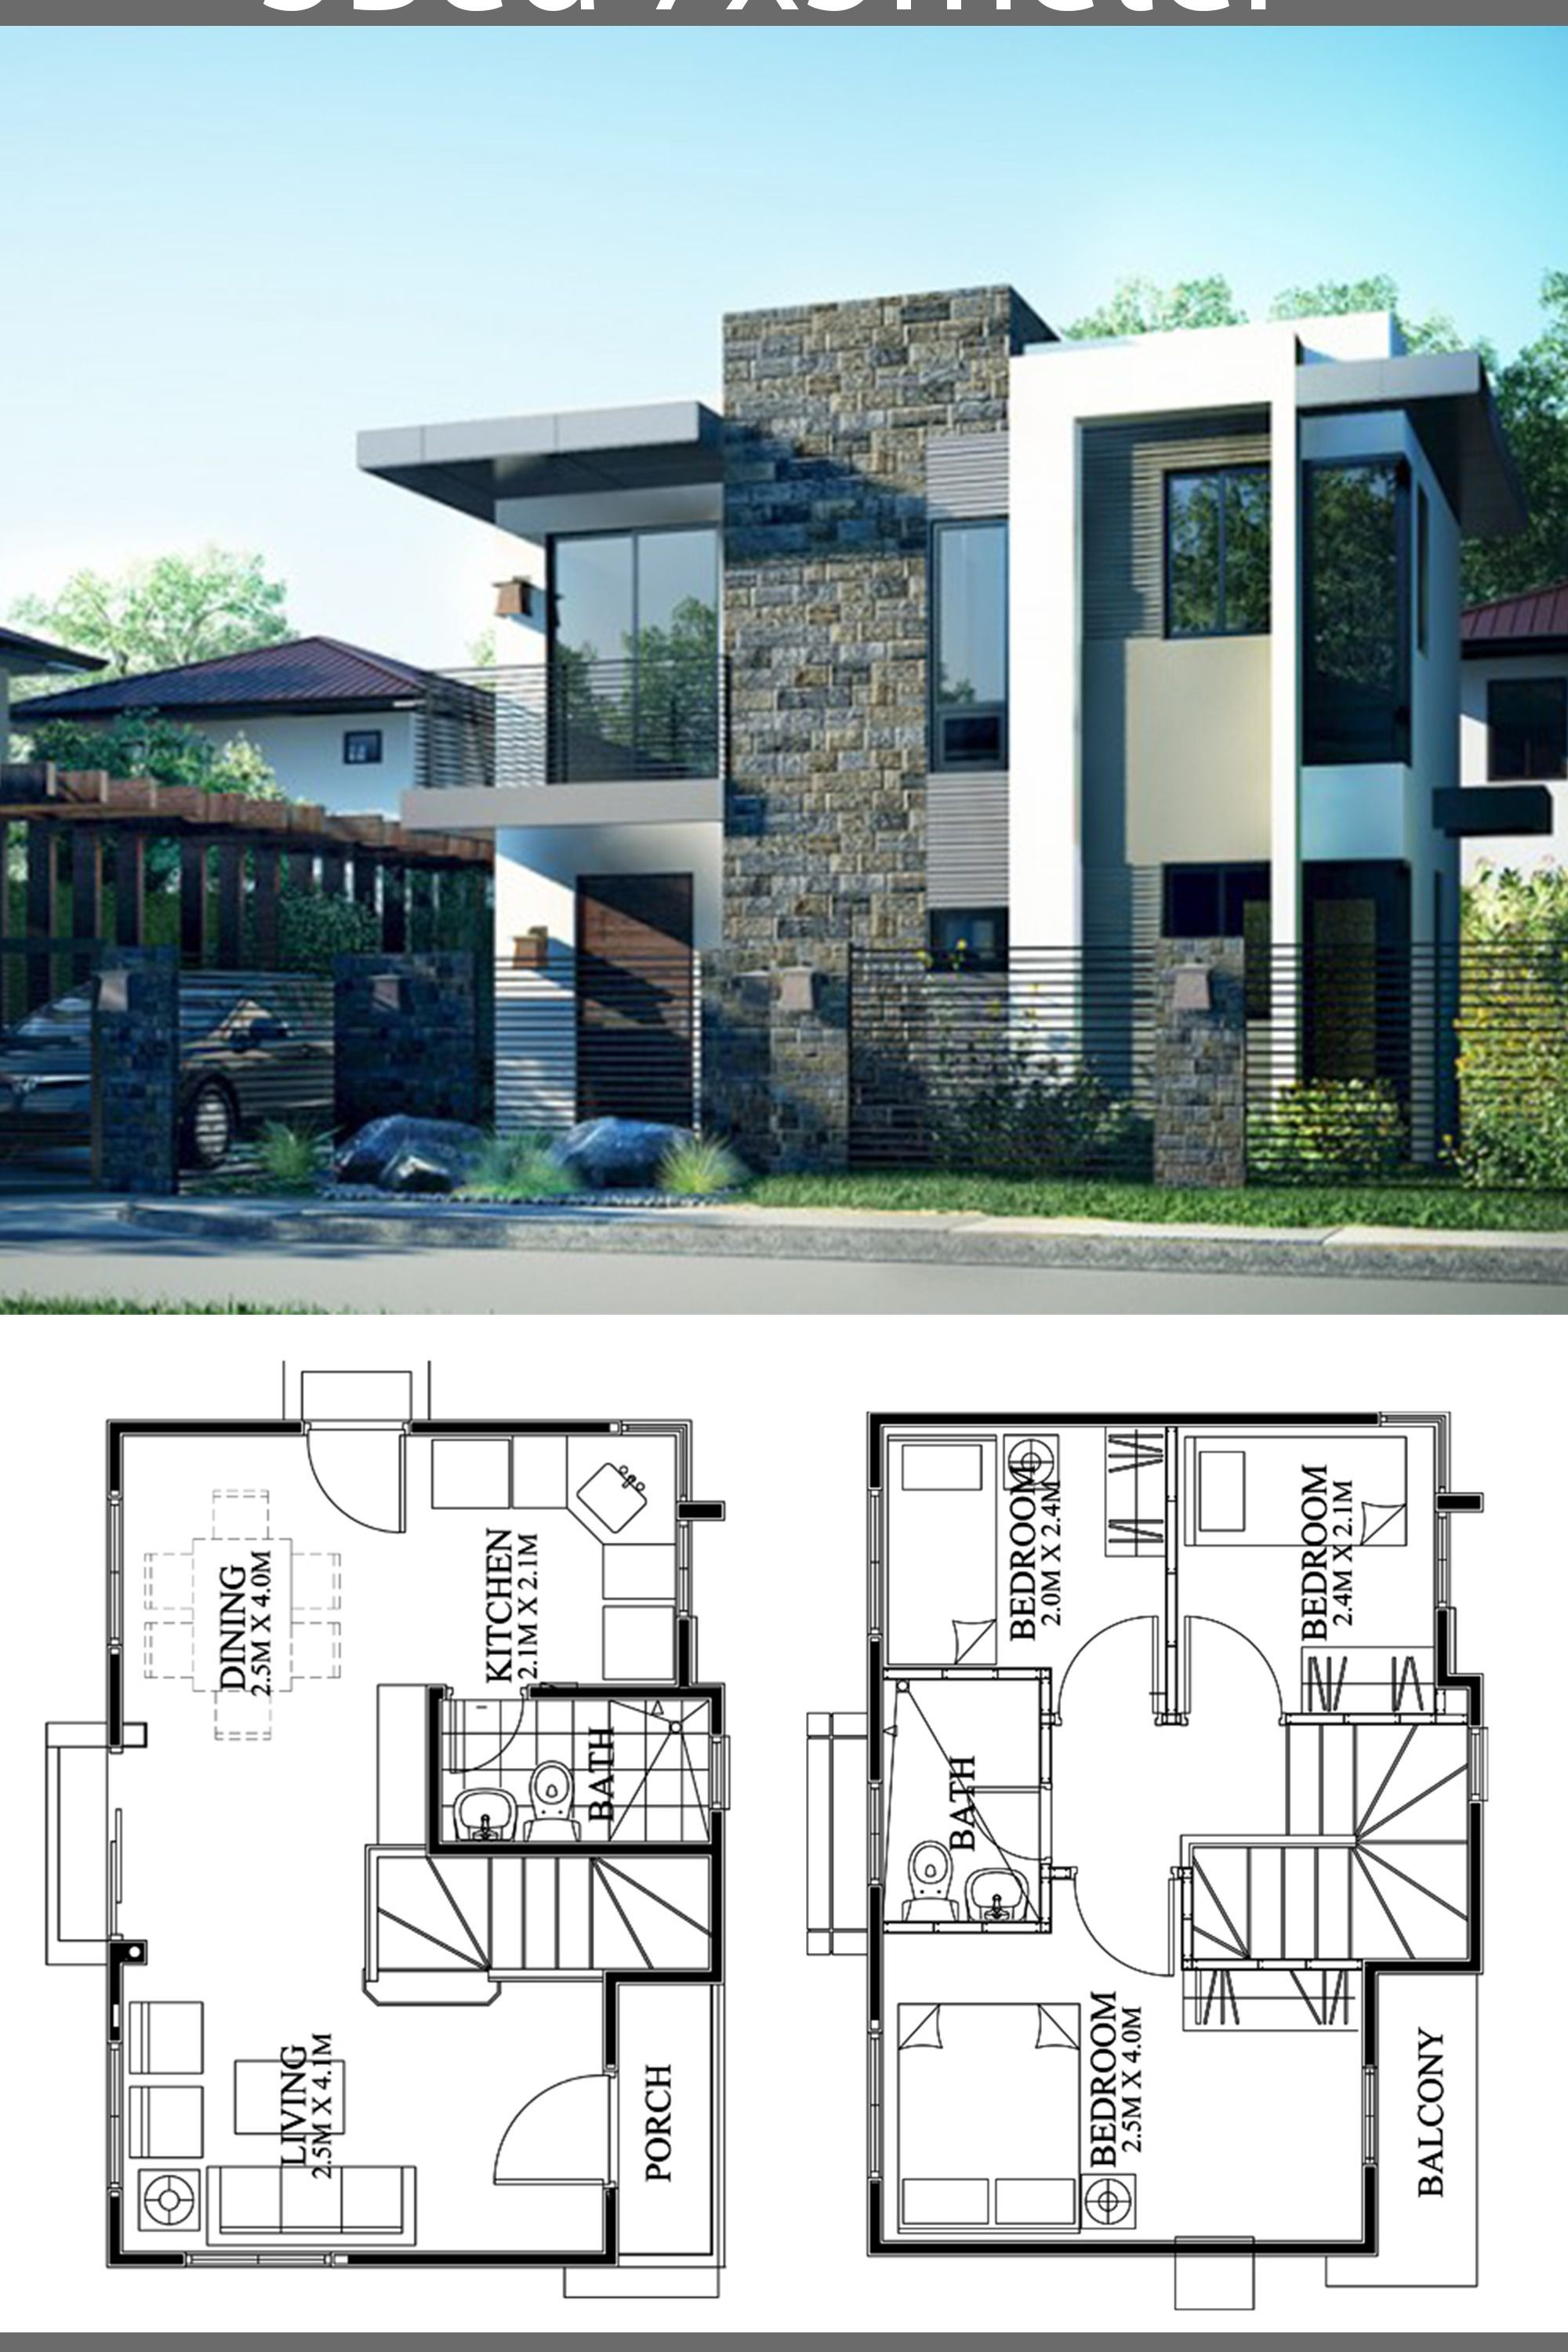 High Rise Residential Building Plans Home Residential Residential Building Plan Hotel Floor Plan Residential Architecture Plan